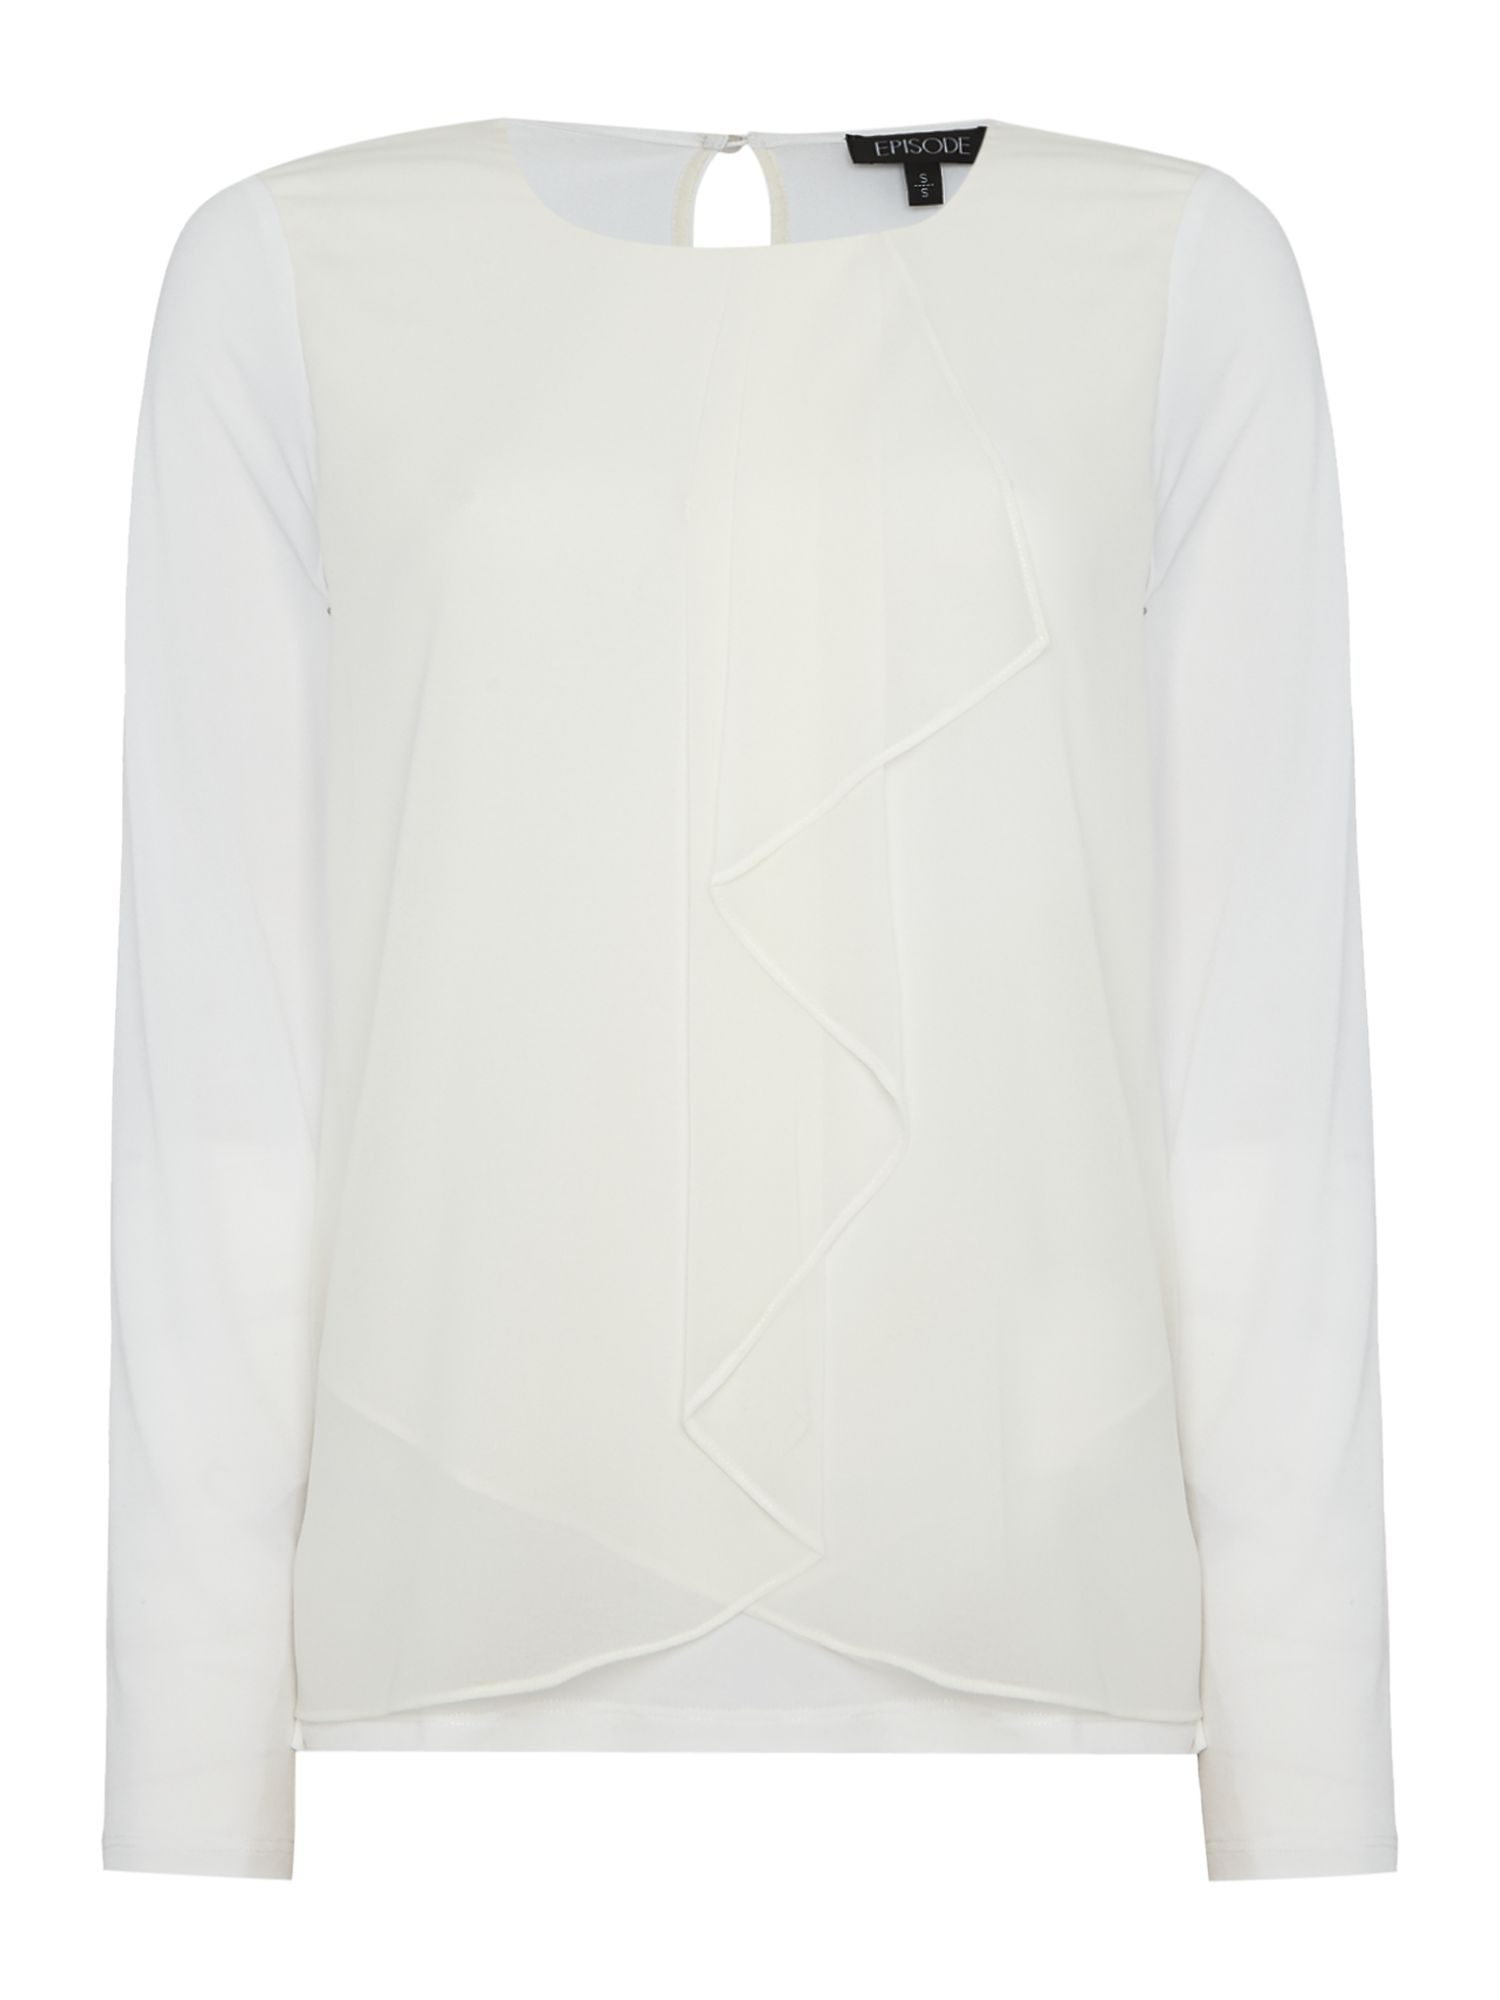 Episode Episode Long sleeve ruffle blouse, White